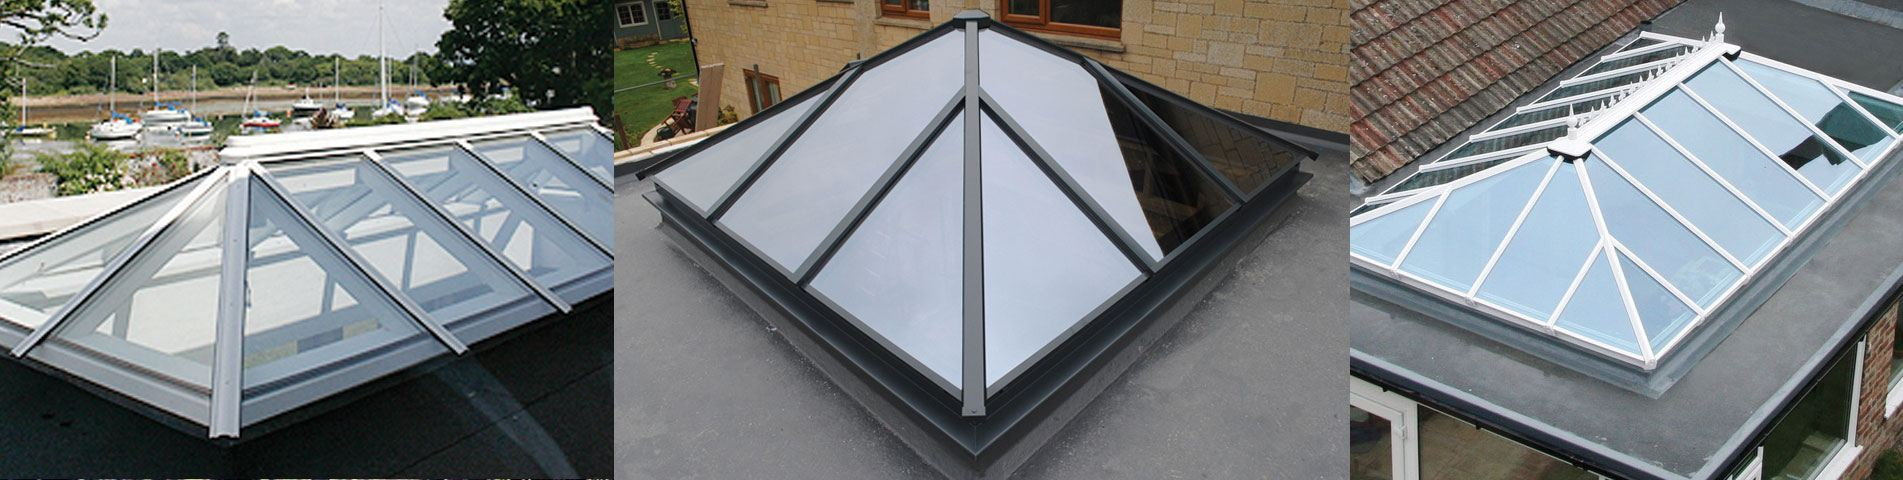 skylights-rooflights-nottingham